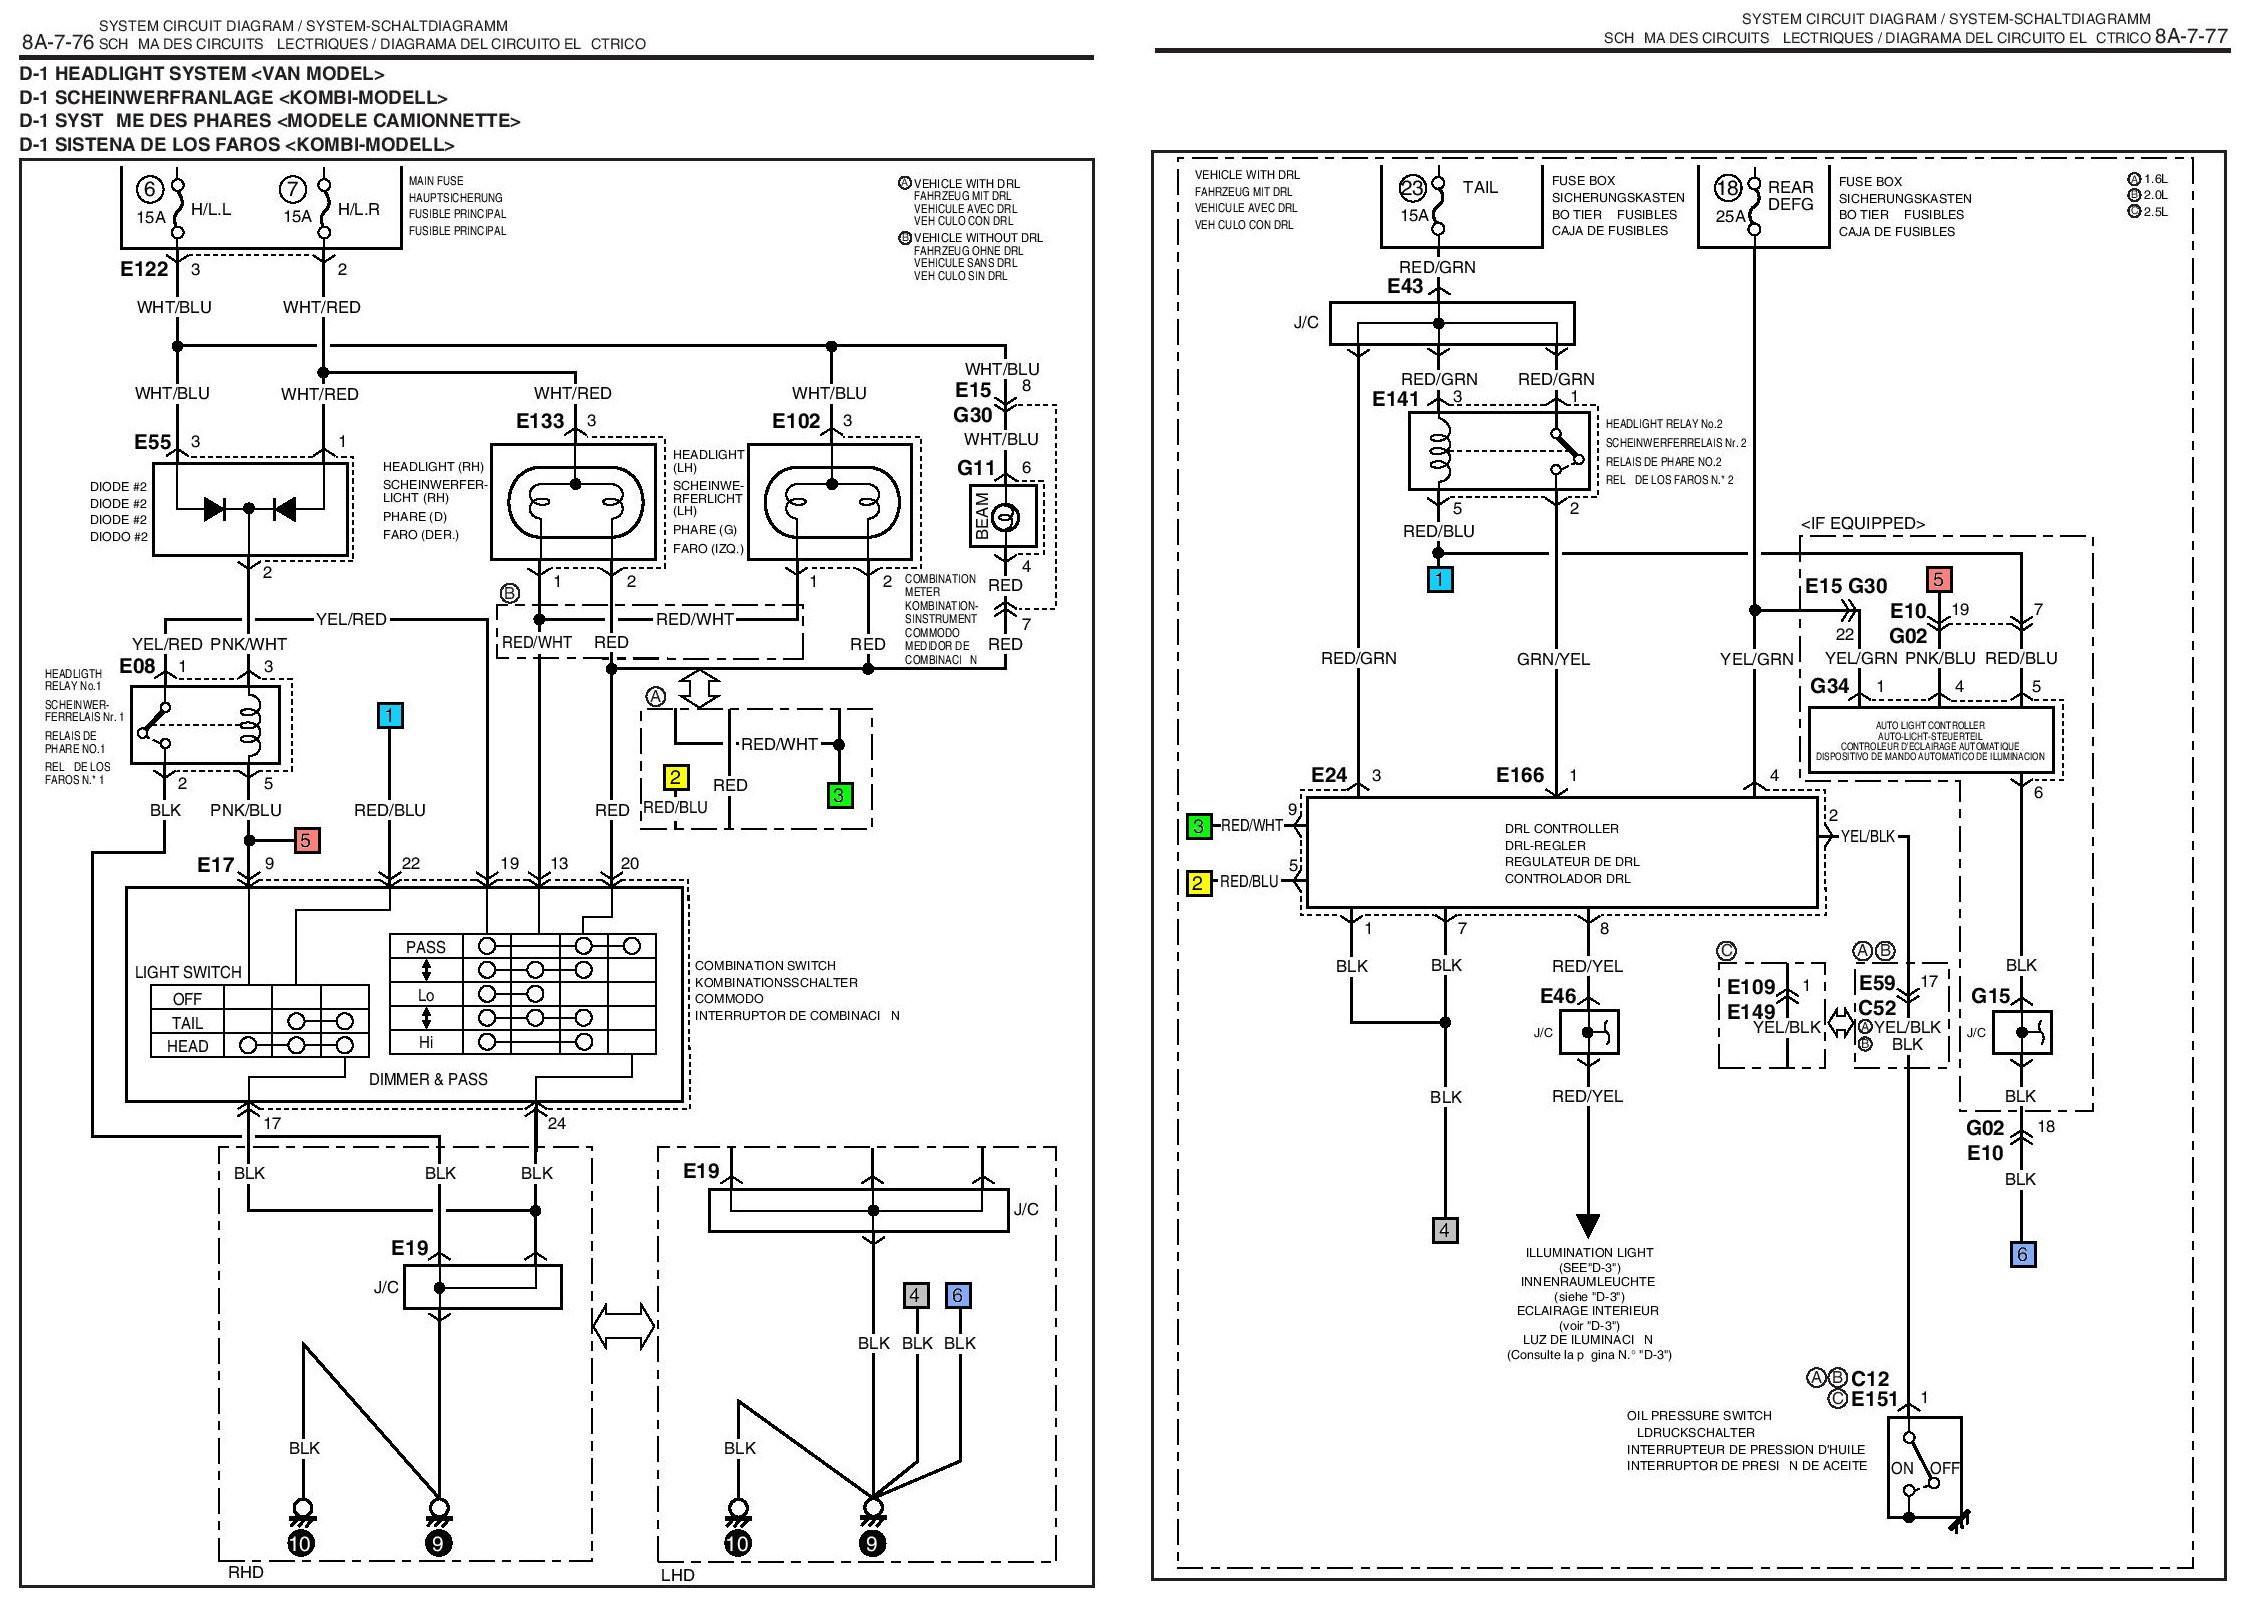 Suzuki Motorcycle Schematics Lt125 Wiring Diagram Data X90 Diagrams Schematic 2003